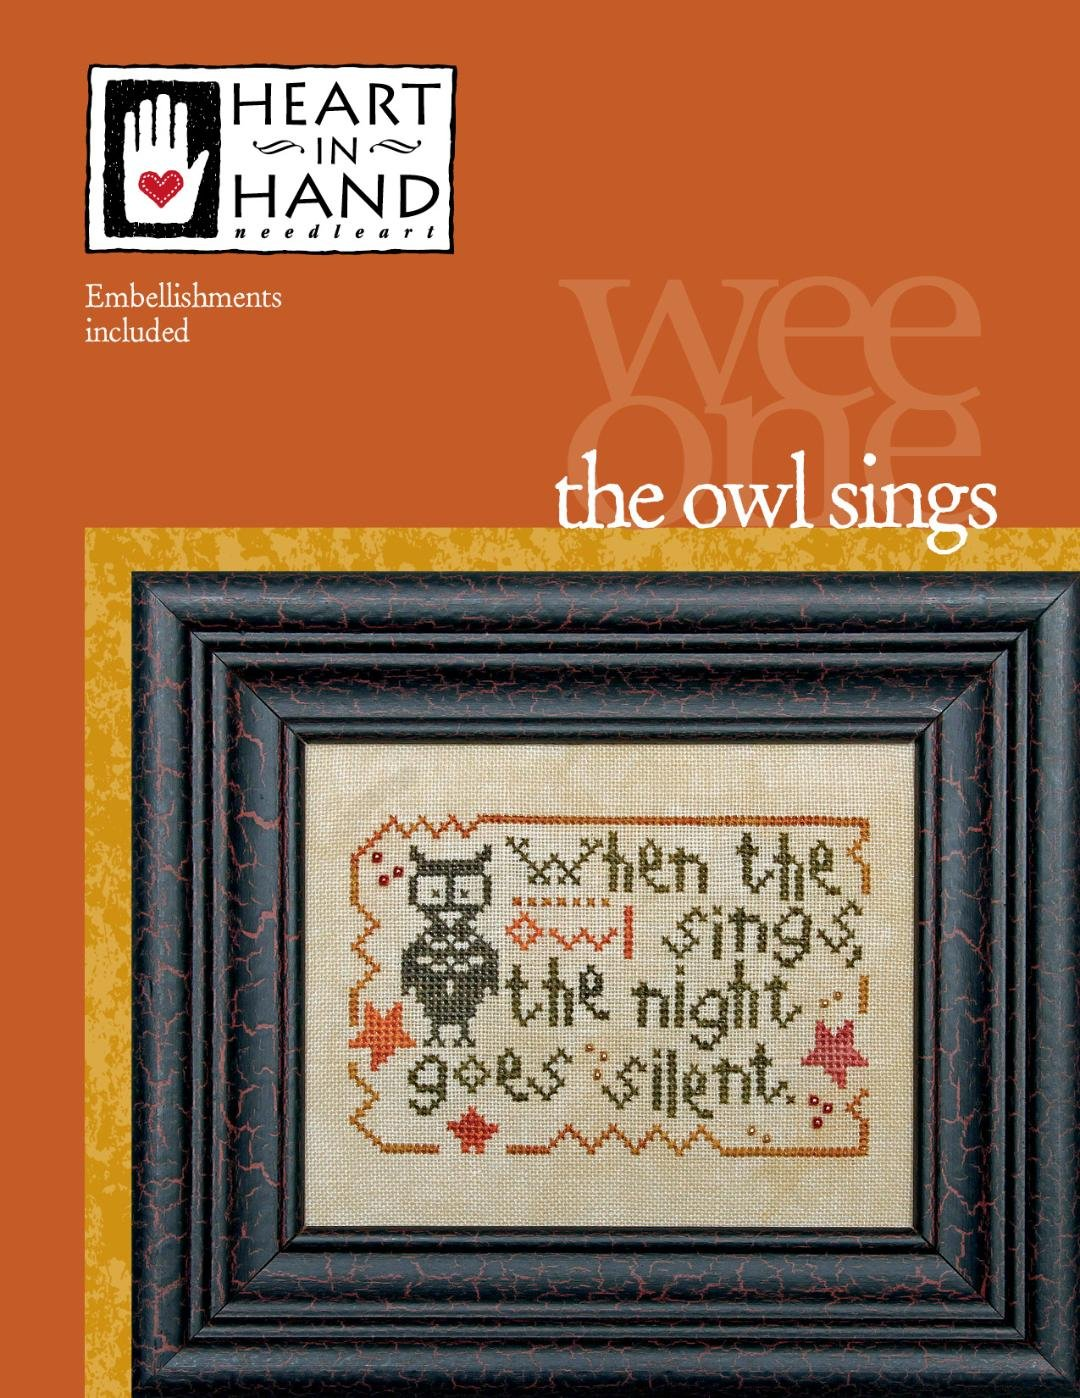 Heart in Hand - Owl Sings The